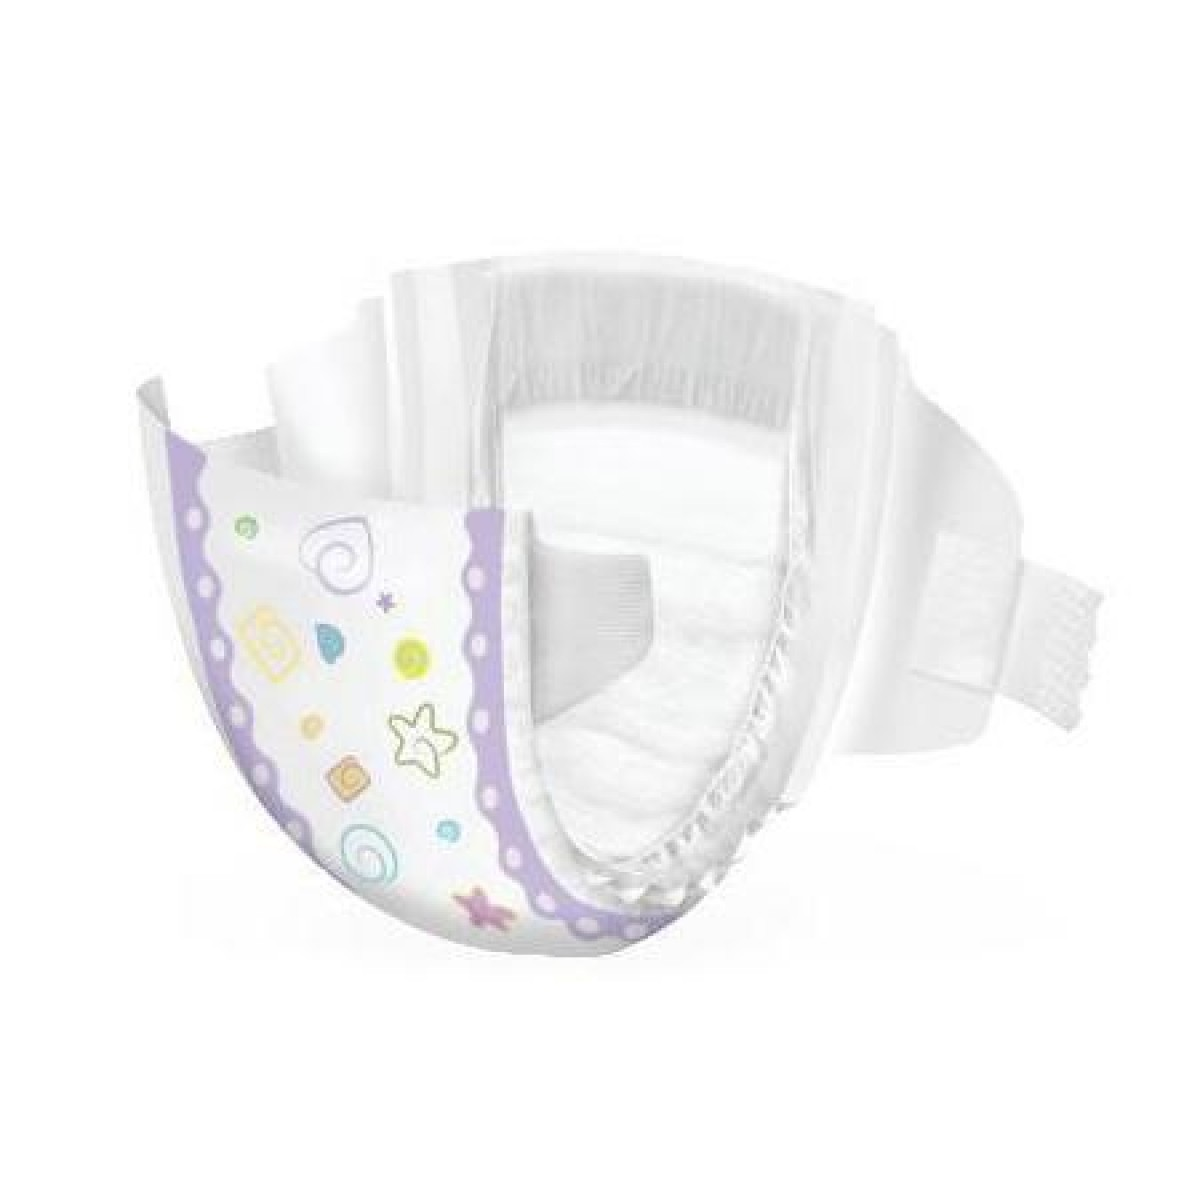 medline disposable mask